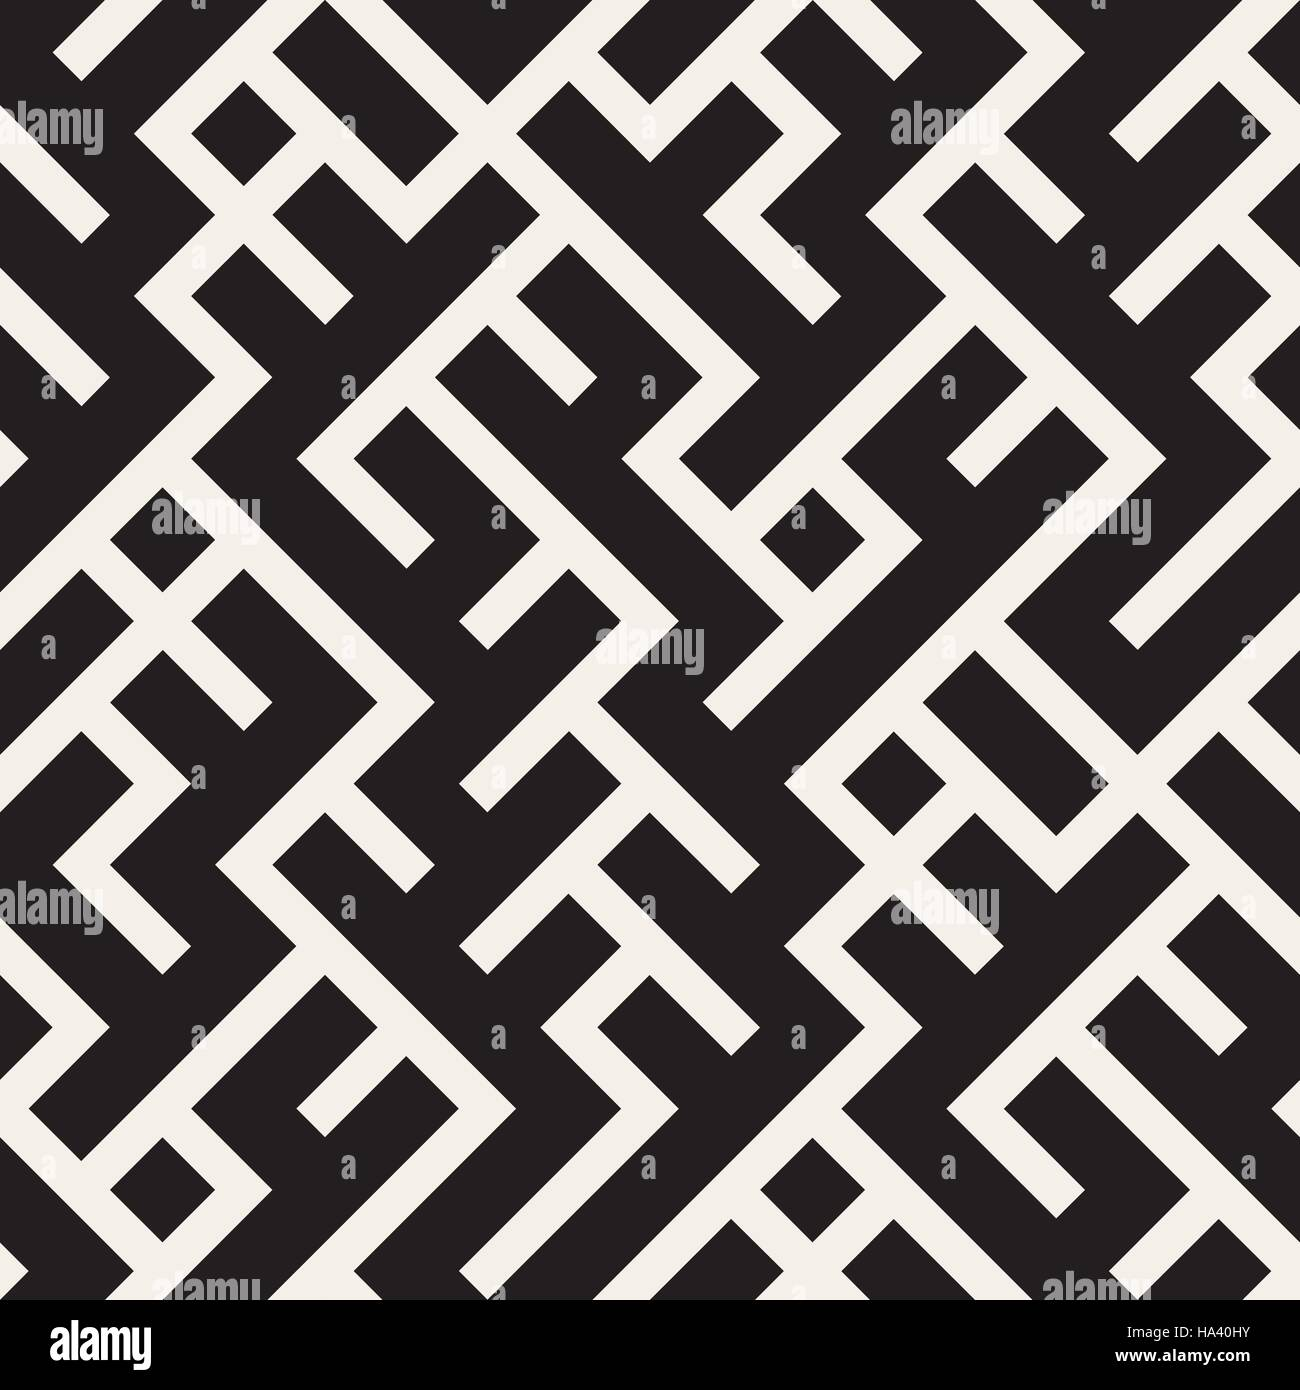 Vector Seamless Black and White Maze Lines Pattern - Stock Image